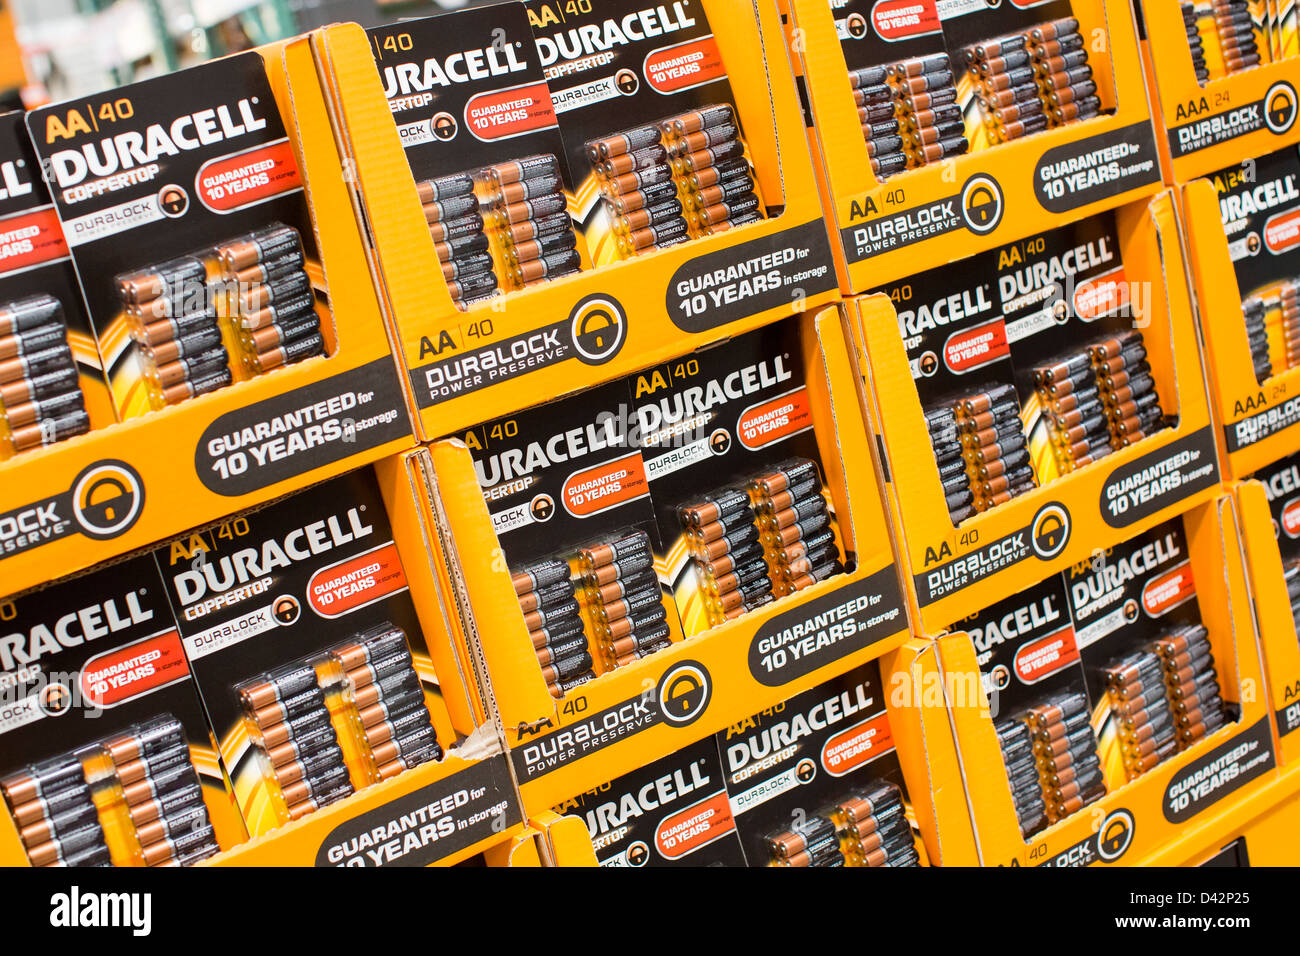 Duracell batteries on display at a costco wholesale warehouse club duracell batteries on display at a costco wholesale warehouse club thecheapjerseys Images